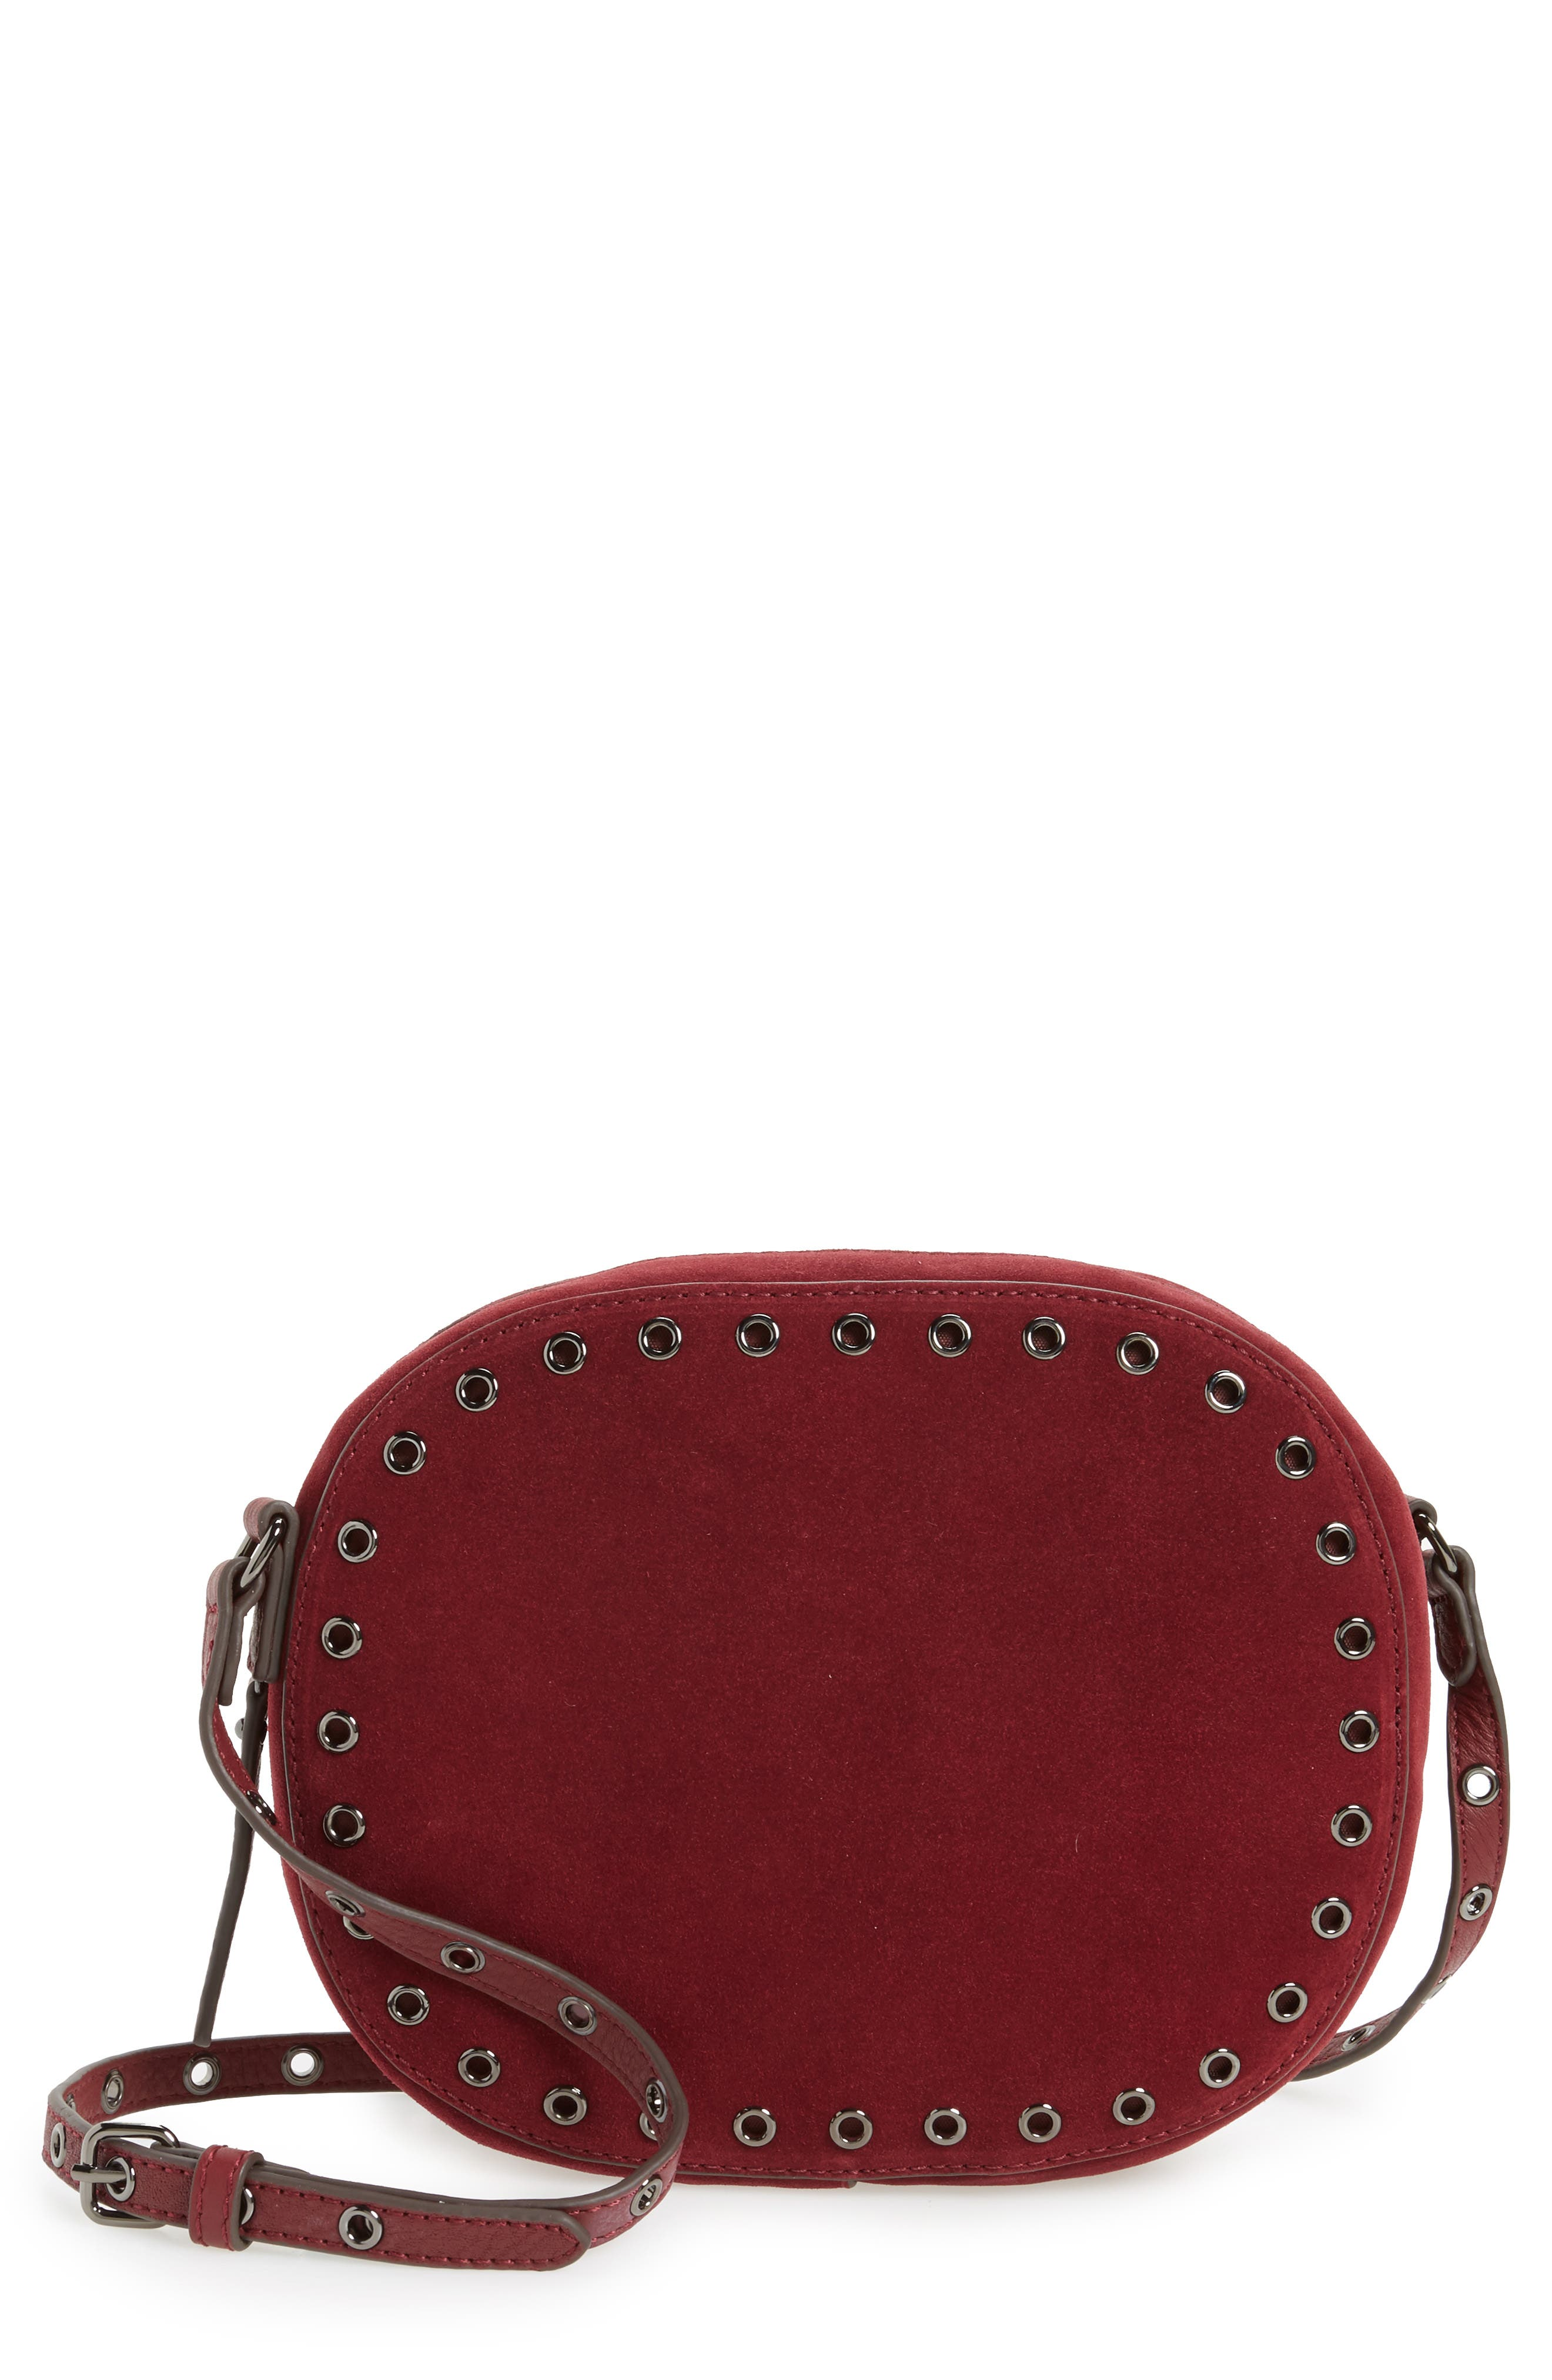 Main Image - Vince Camuto Areli Suede & Leather Crossbody Bag